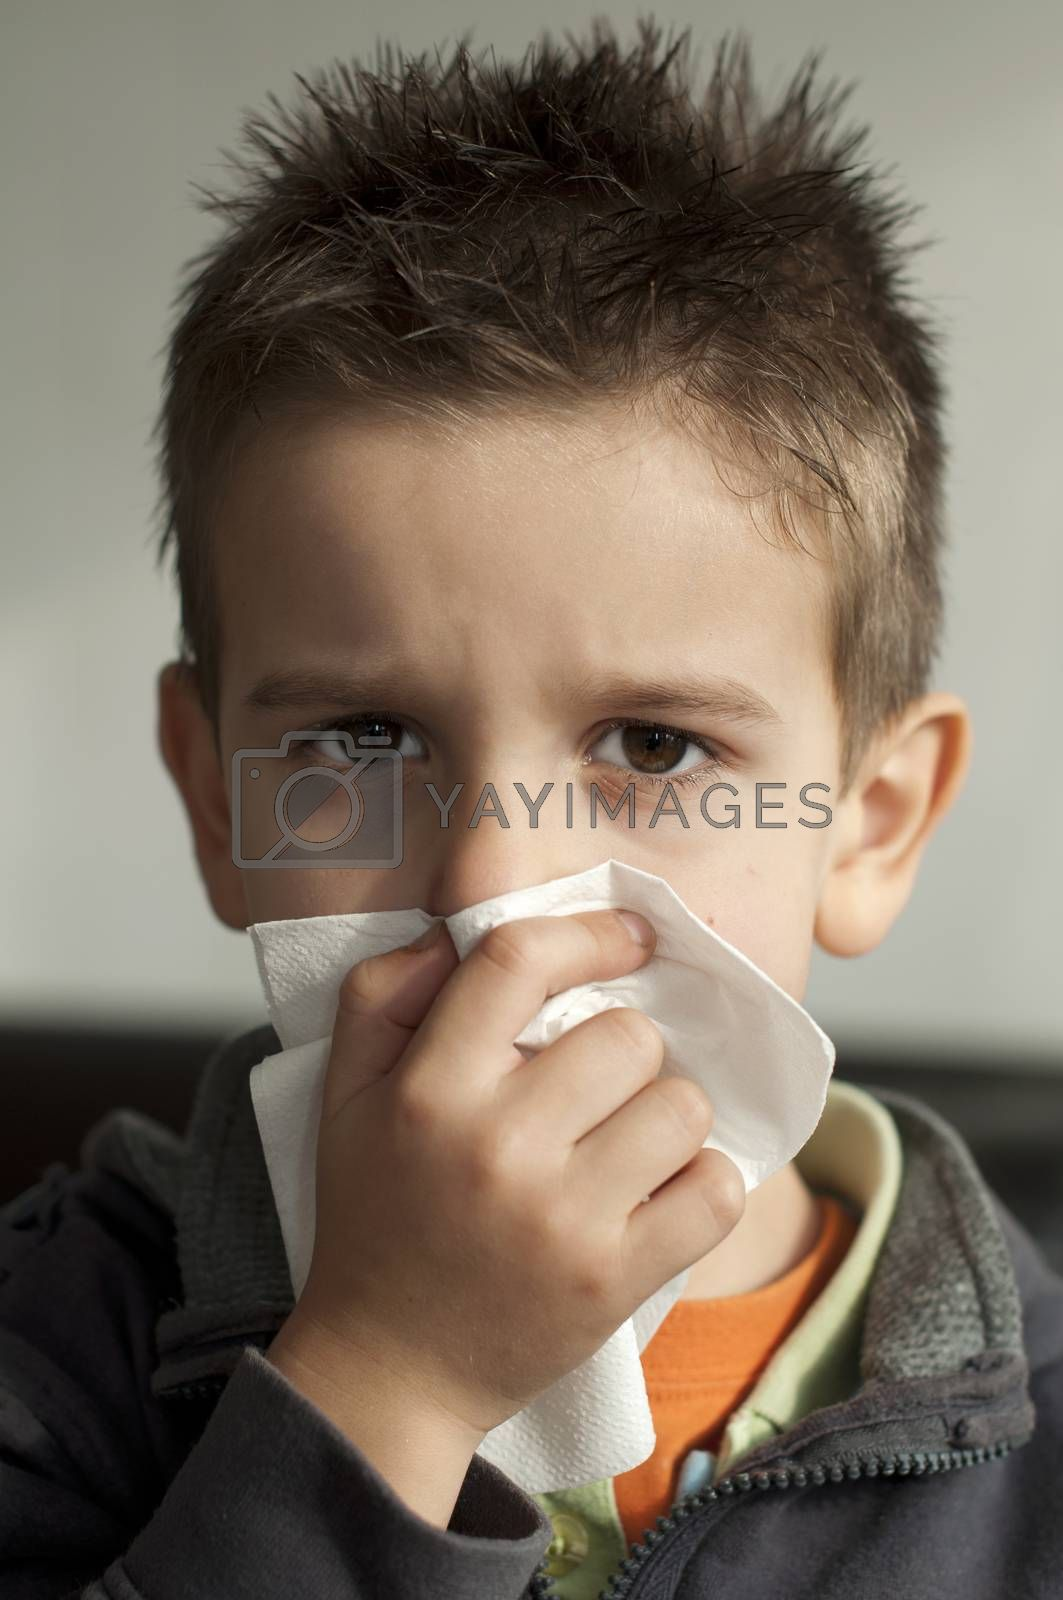 Child suffering from a cold. Cough with a tissue